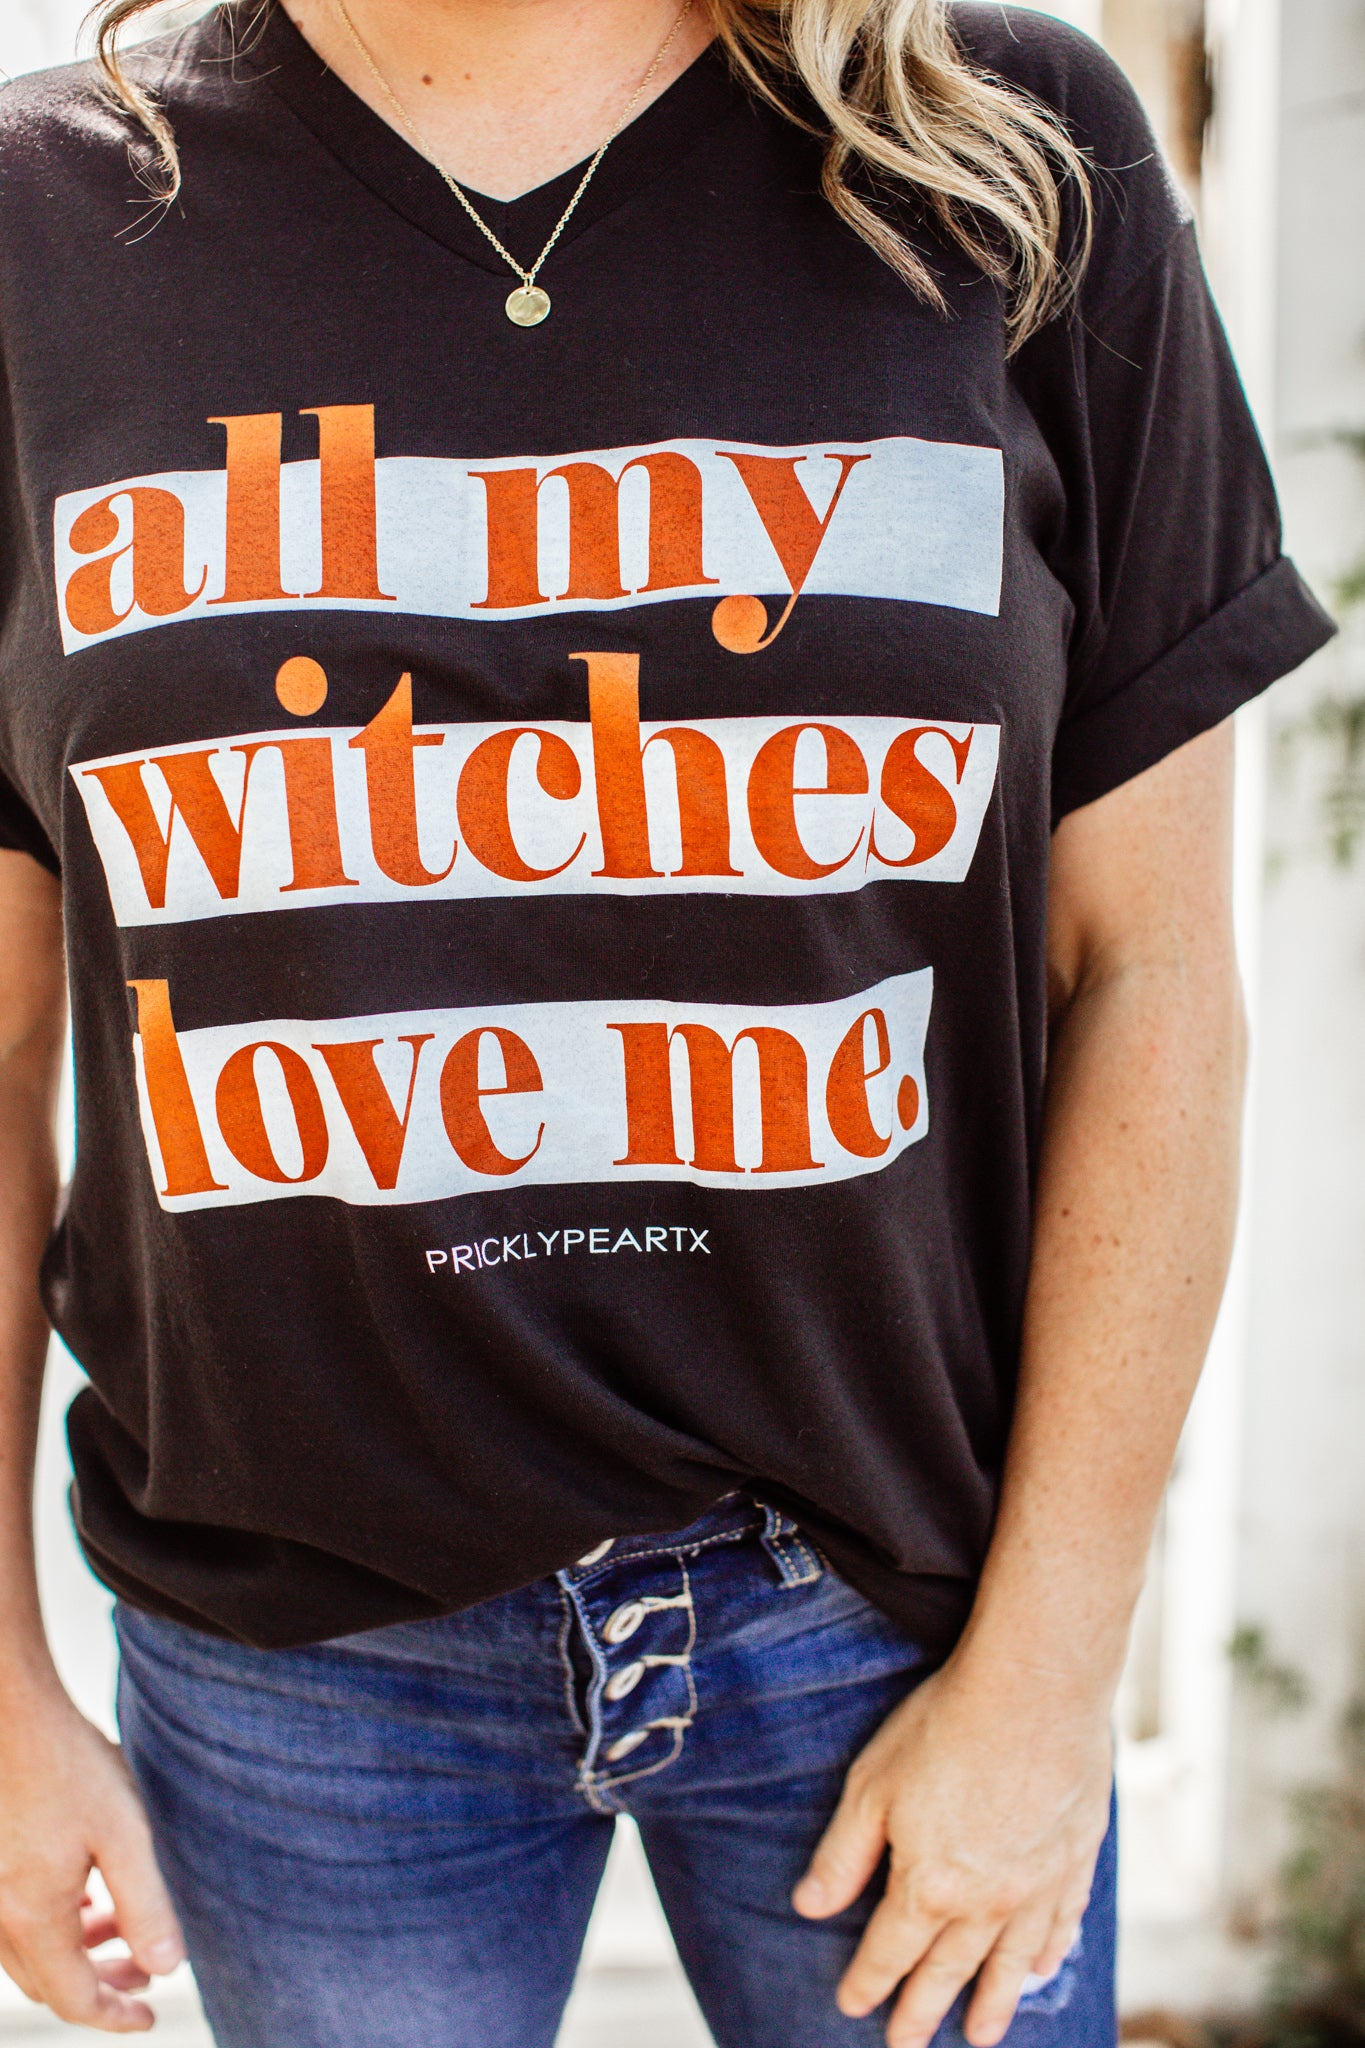 All My Witches Love Me Tee (S-3X)